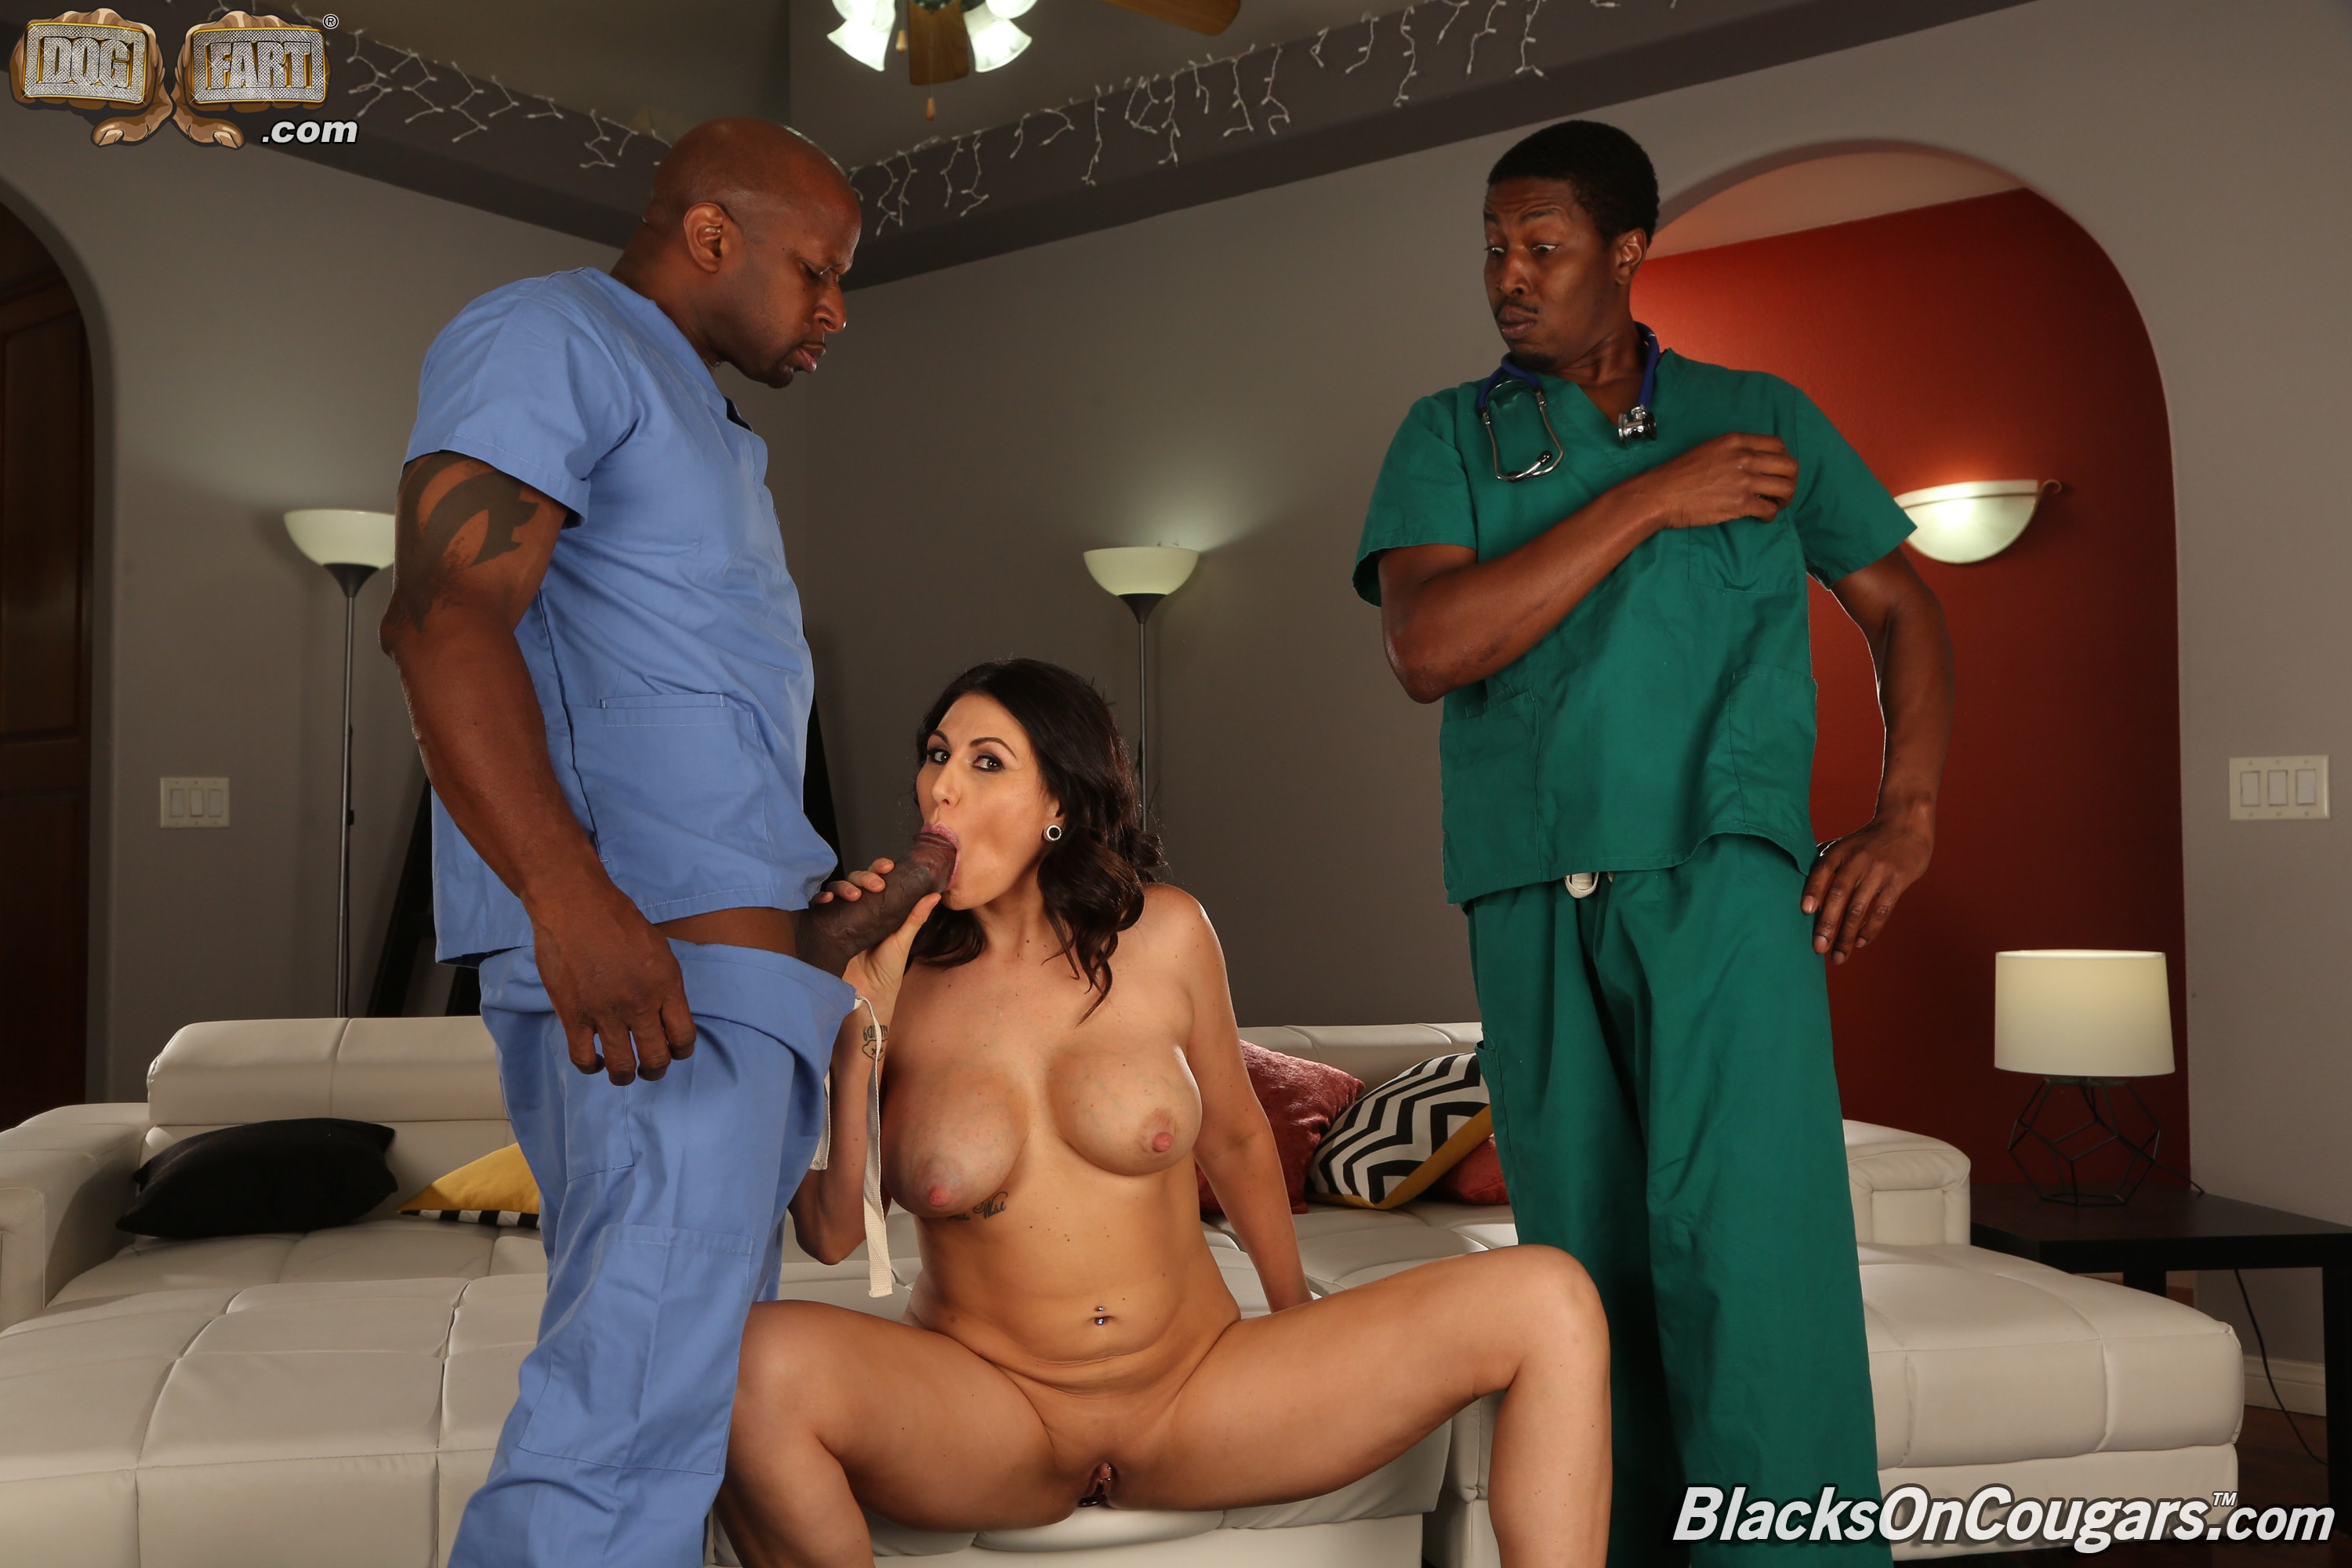 Dogfart '- Blacks On Cougars - Scene 2' starring Makayla Cox (Photo 5)